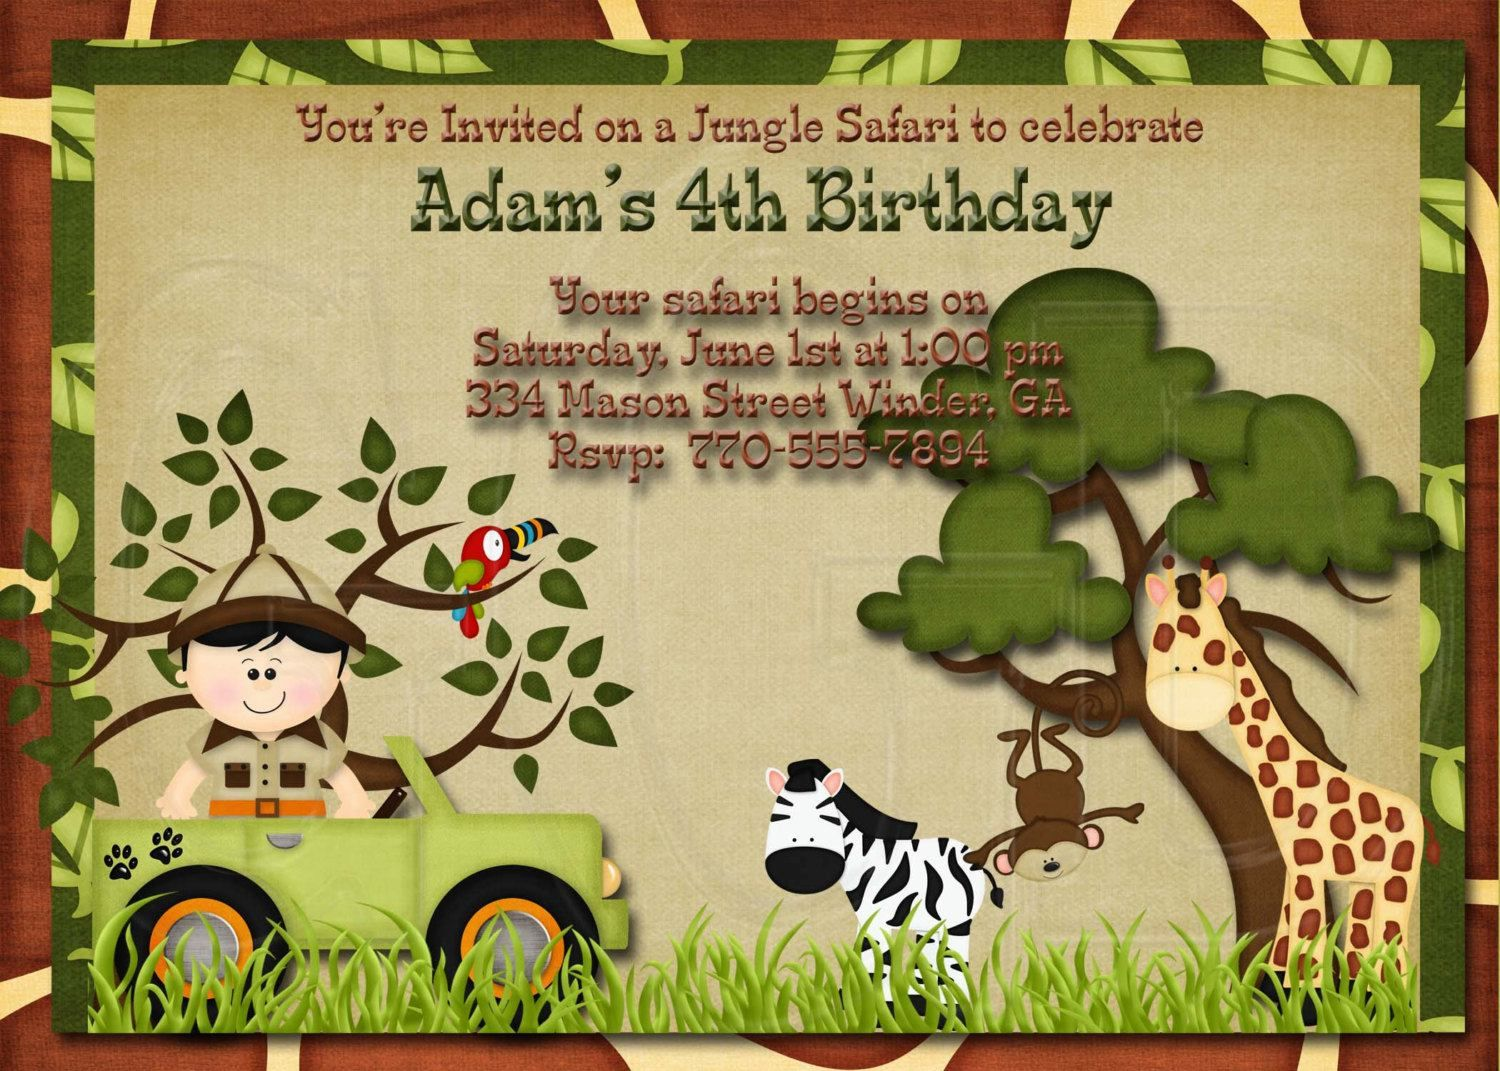 Girrafe and Zebra Jungle Safari Zoo Birthday Invitation  Birthday